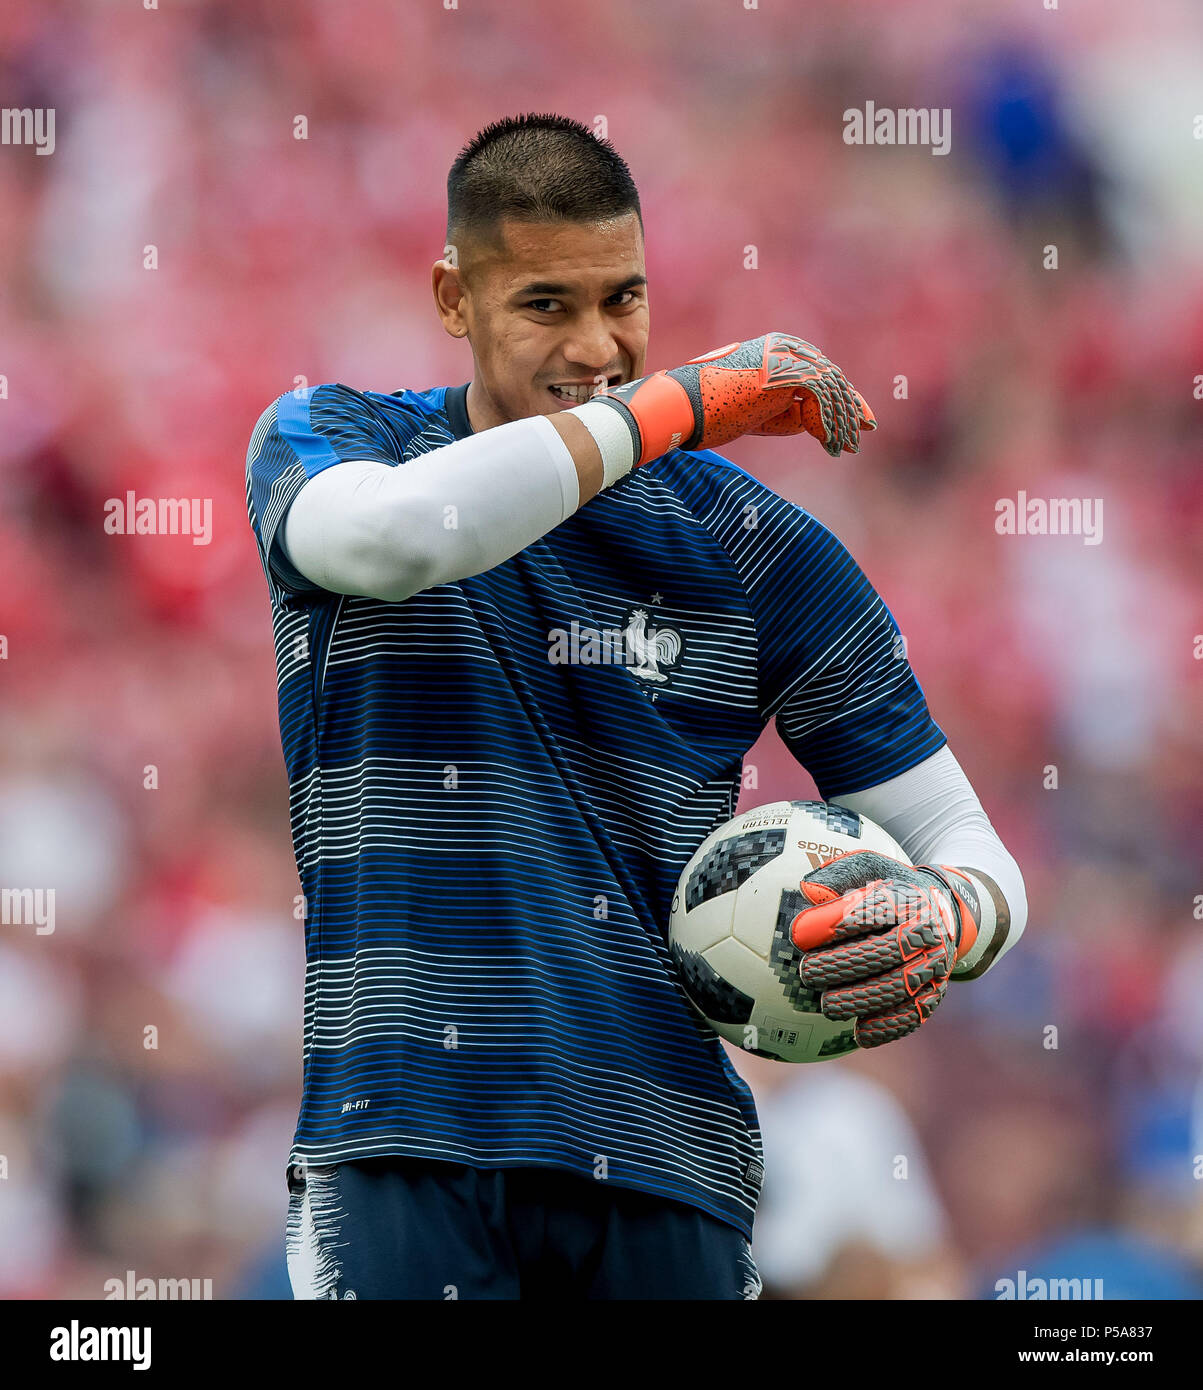 6a81f79216c 26th June, 2018. goalkeeper Alphonse Areola (France) before